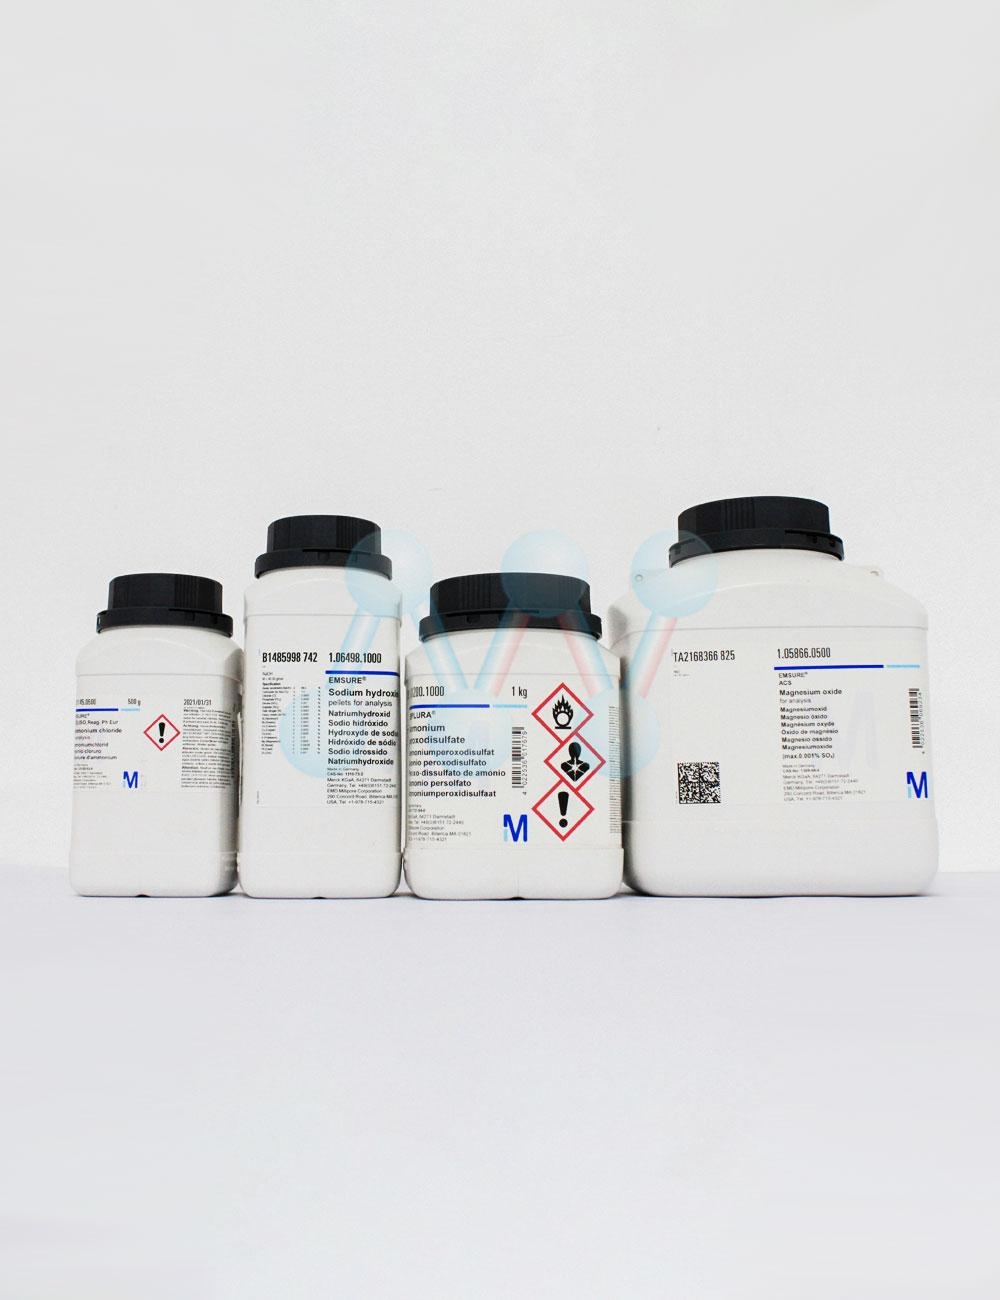 Magnesium chloride hexahydrate MgCl2.6H2O